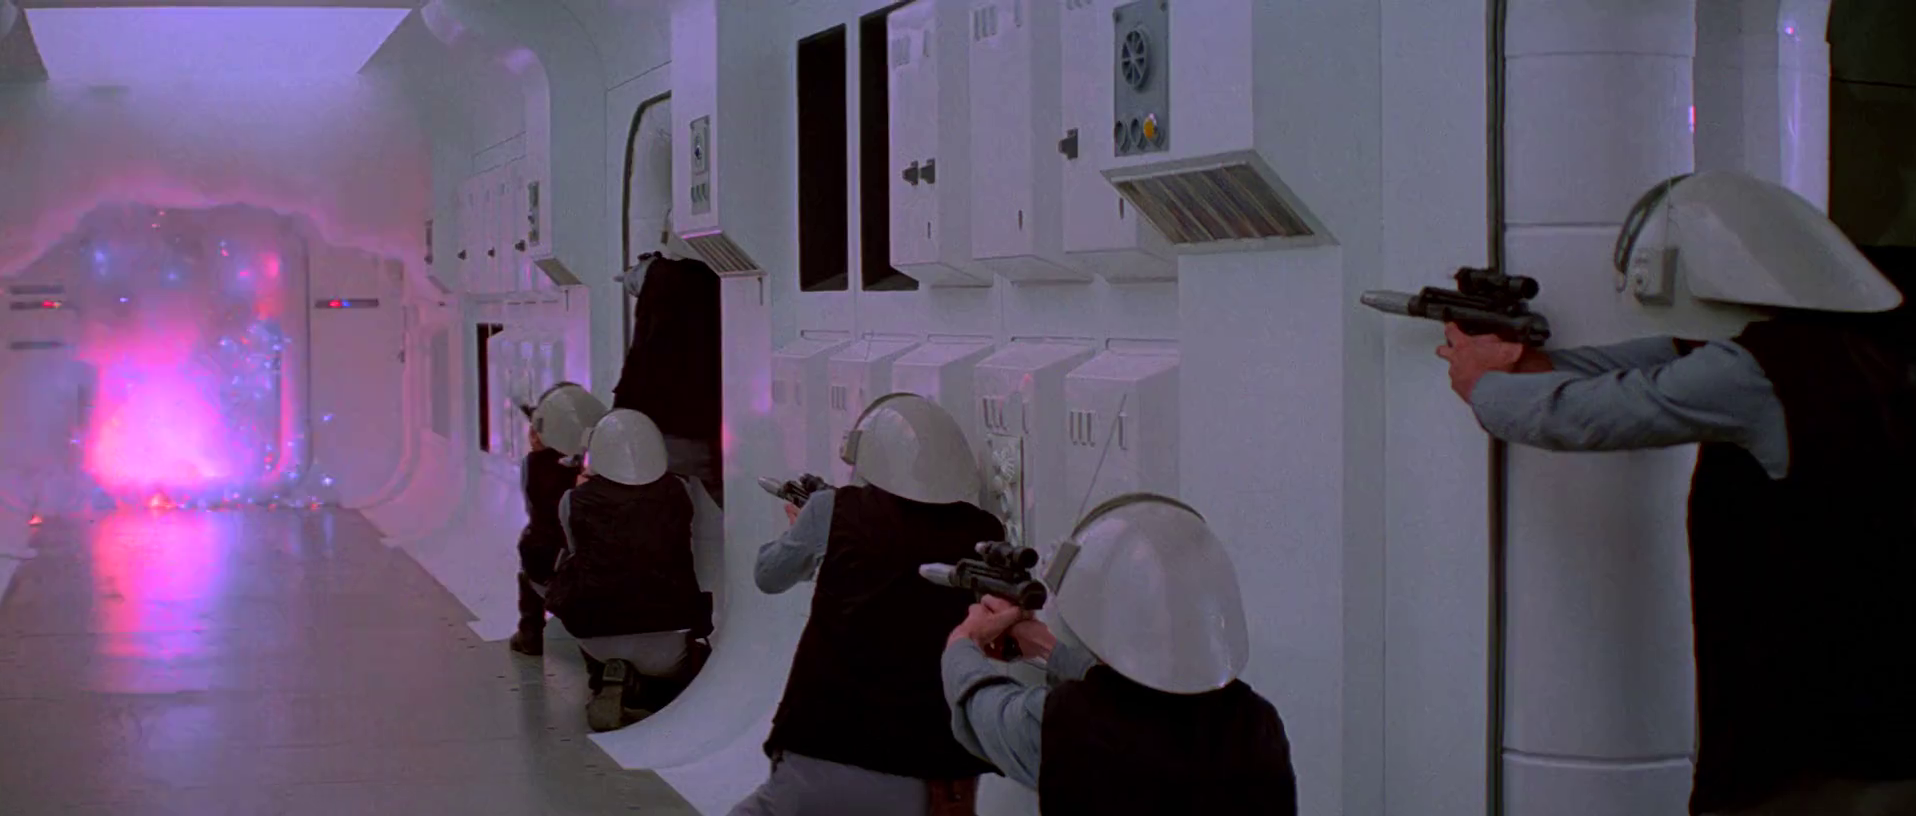 stormtroopers cut through door